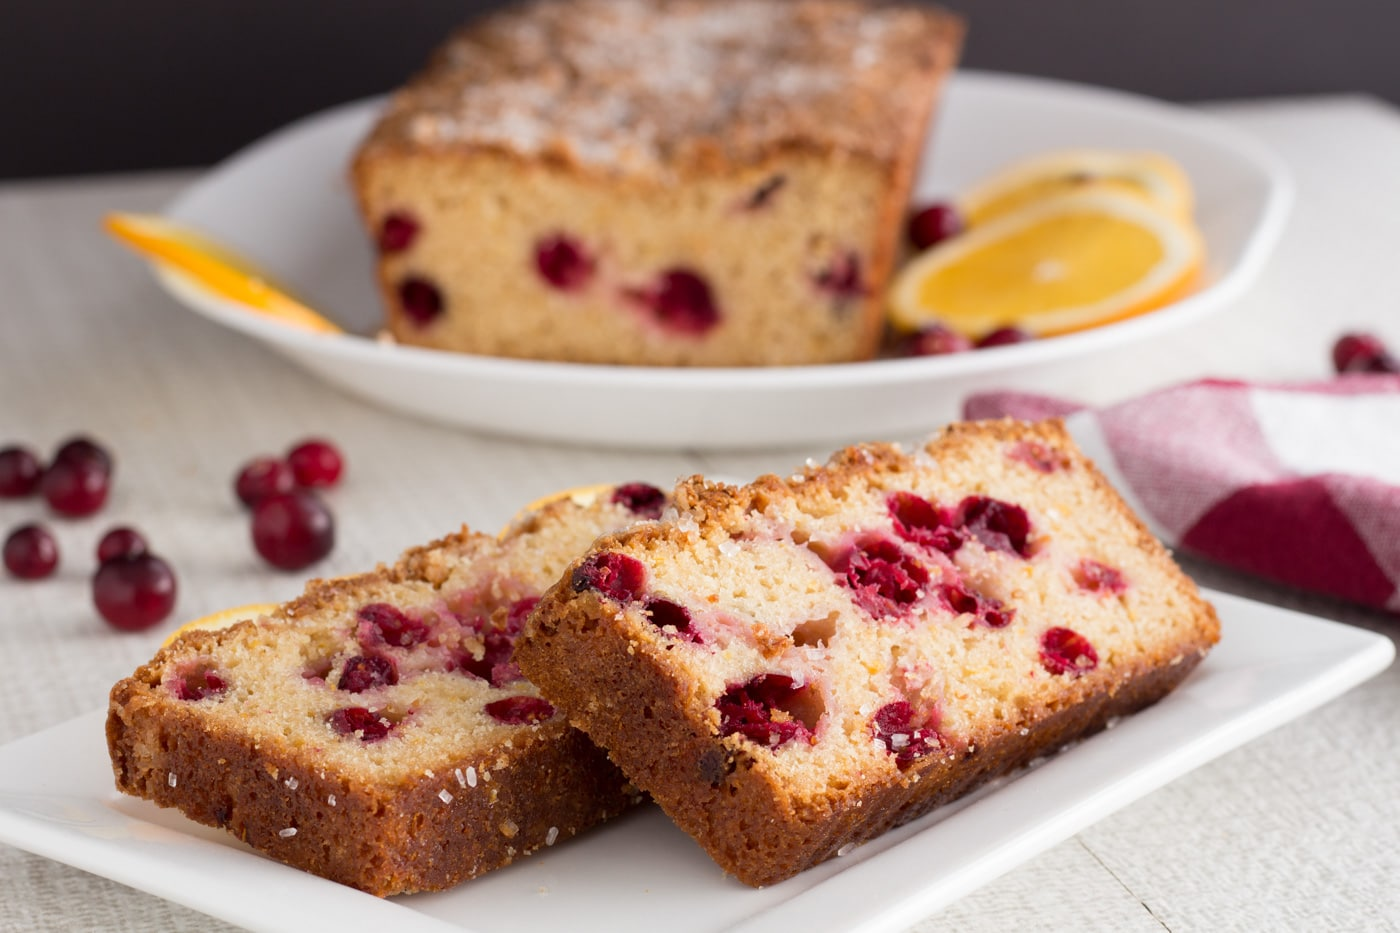 Slices of quick bread with cranberries on a plate